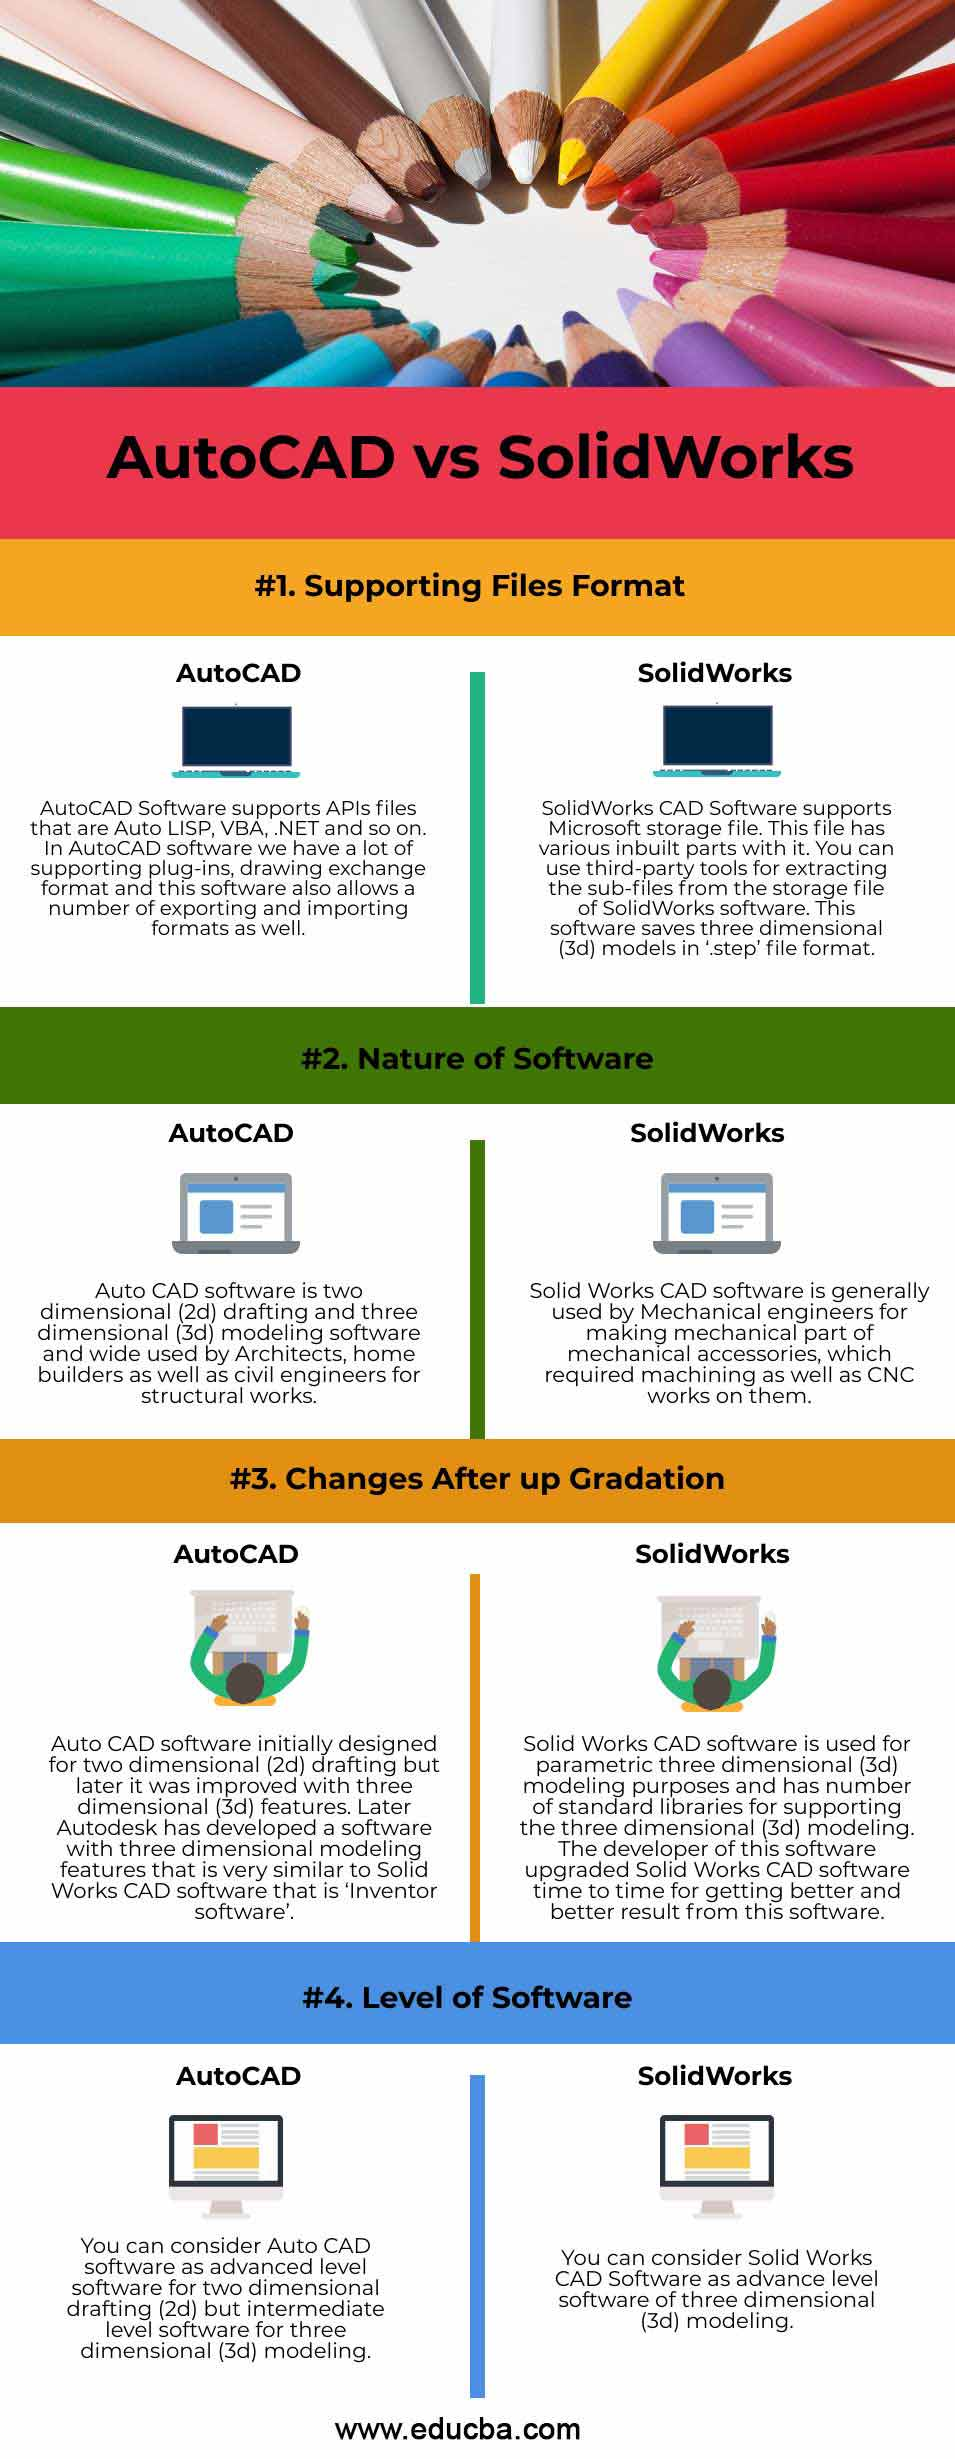 AutoCAD vs SolidWorks info